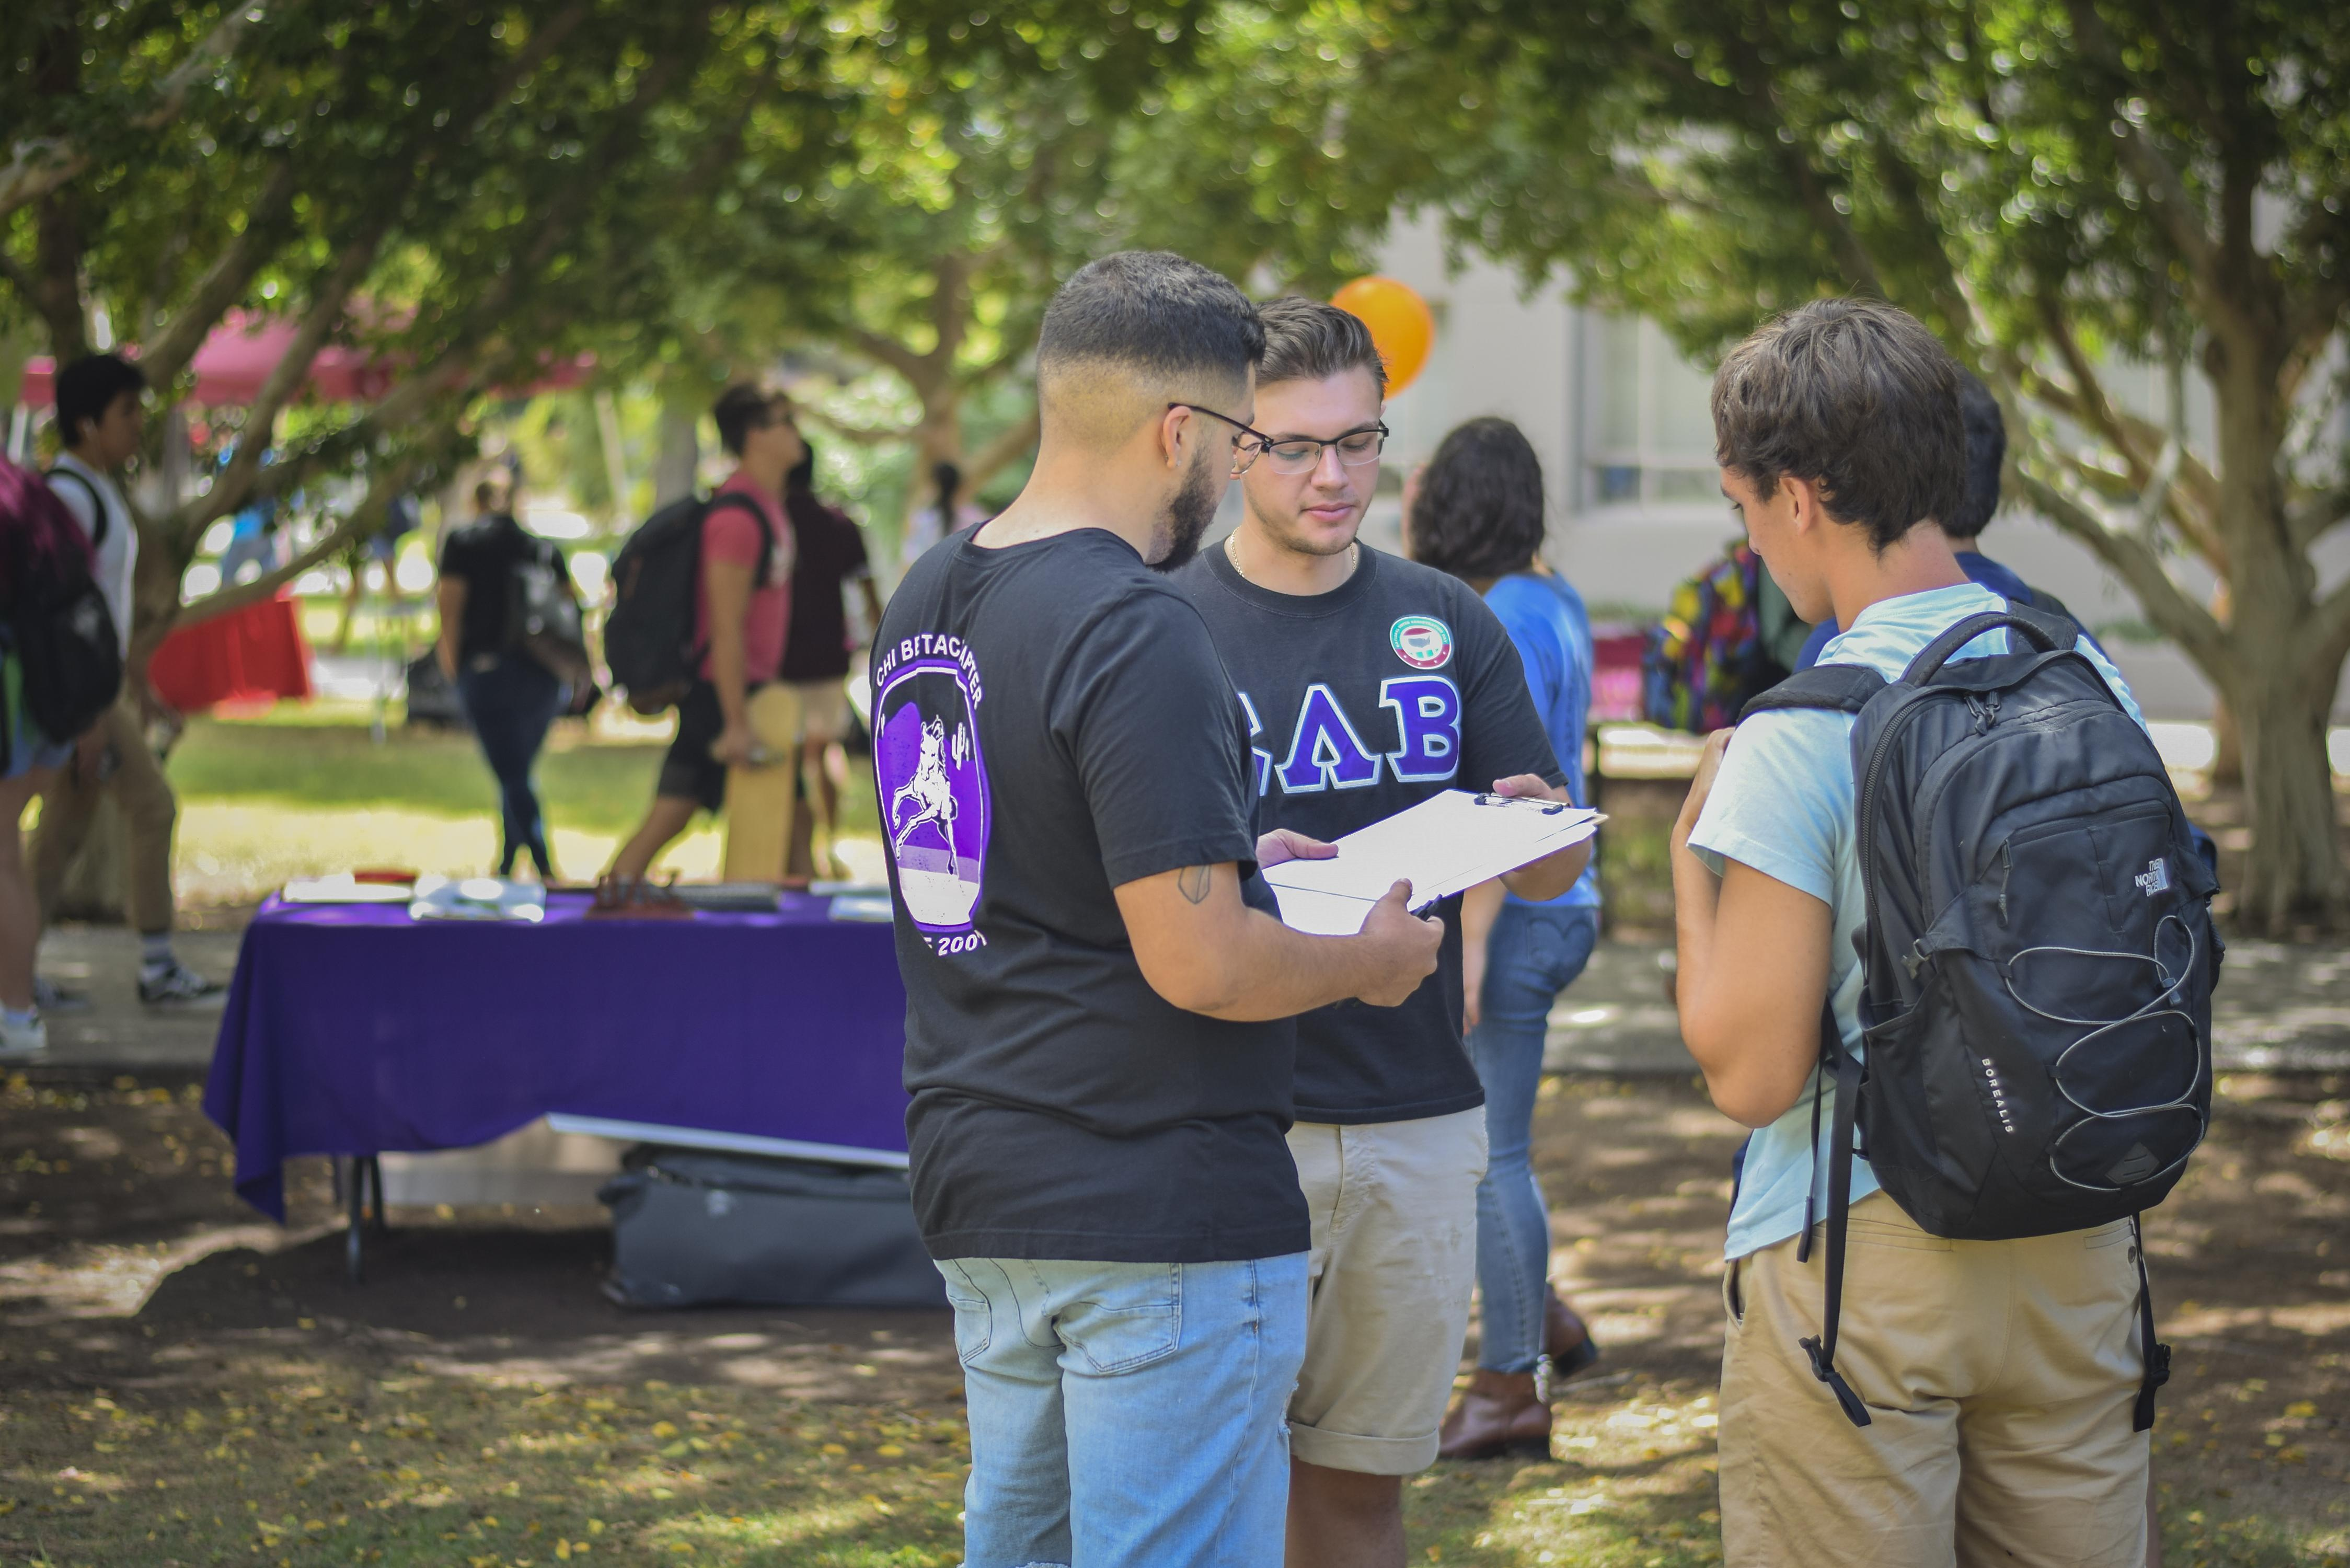 Three students, two with Greek-lettered shirts, talk with clipboards at National Voter Registration Day at ASU Tempe